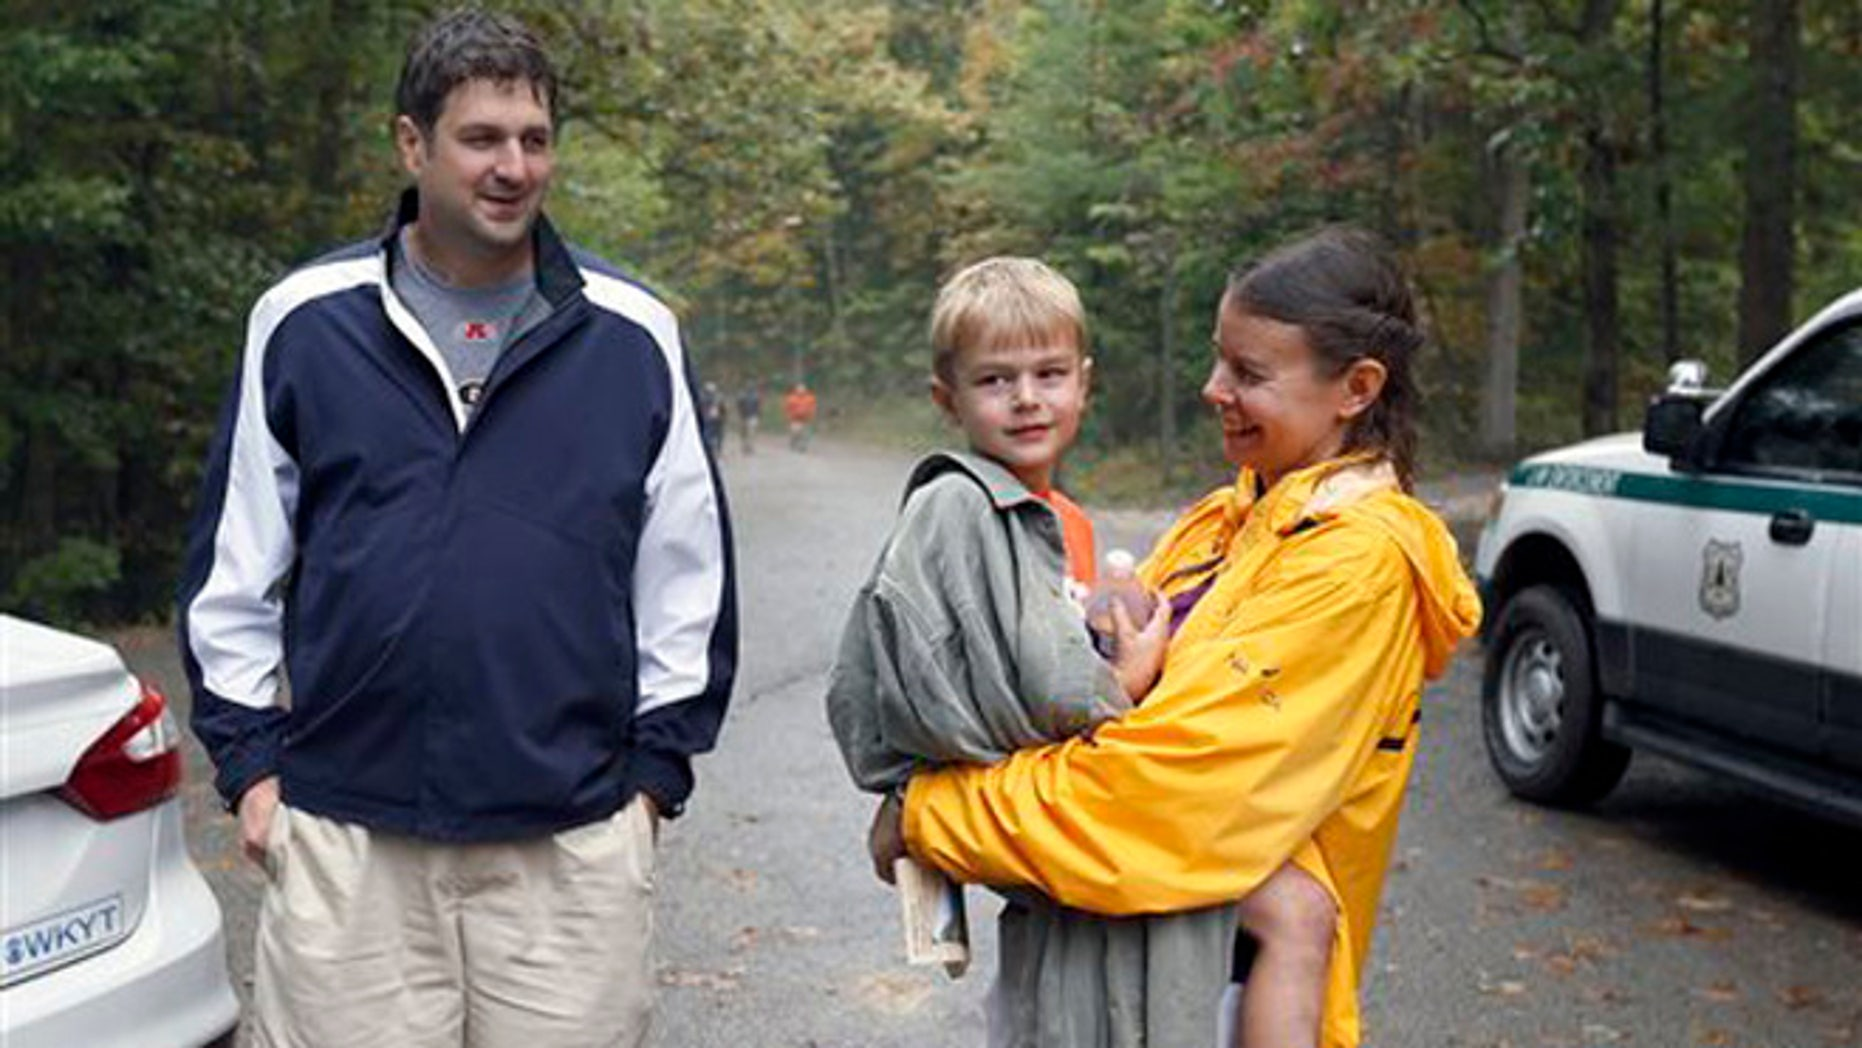 Oct. 9, 2015: Dave and Julia Esposito with their son, Michael after he was found near the Koomer Ridge Campground in the Red River Gorge, near Slade, Ky.